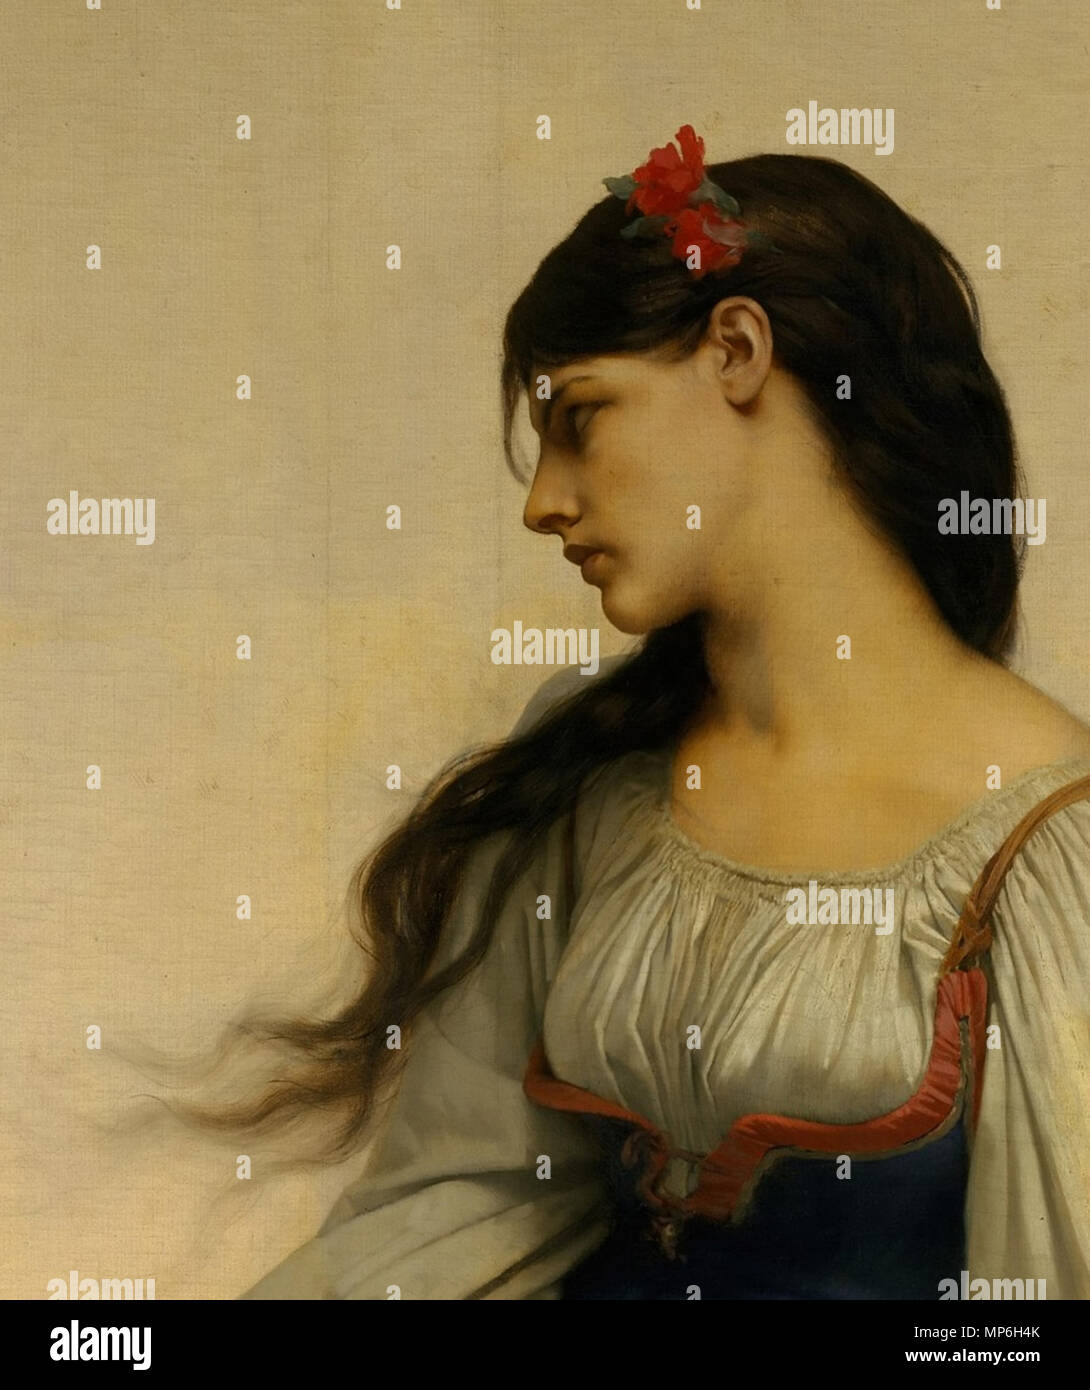 . English: Jules-Joseph Lefebvre. Graziella. The Metropolitan Museum of Art. Oil on canvas. 78 3/4 x 44 1/4 in. (200 x 112.4 cm) (Detail) . 1878.   Jules Lefebvre (1834–1912)   Alternative names Jules Joseph Lefebvre; Jules-Joseph Lefebvre; Jules Le Febvre  Description French painter  Date of birth/death 14 March 1834 24 February 1912  Location of birth/death Tournan, France Paris, France  Work period  1855-1901  Work location Paris  Authority control  : Q433973 VIAF:37191679 ISNI:0000 0001 1621 9259 ULAN:500013504 LCCN:nb2007017414 GND:117614734 WorldCat    crop by uploader 751 Jules Stock Photo